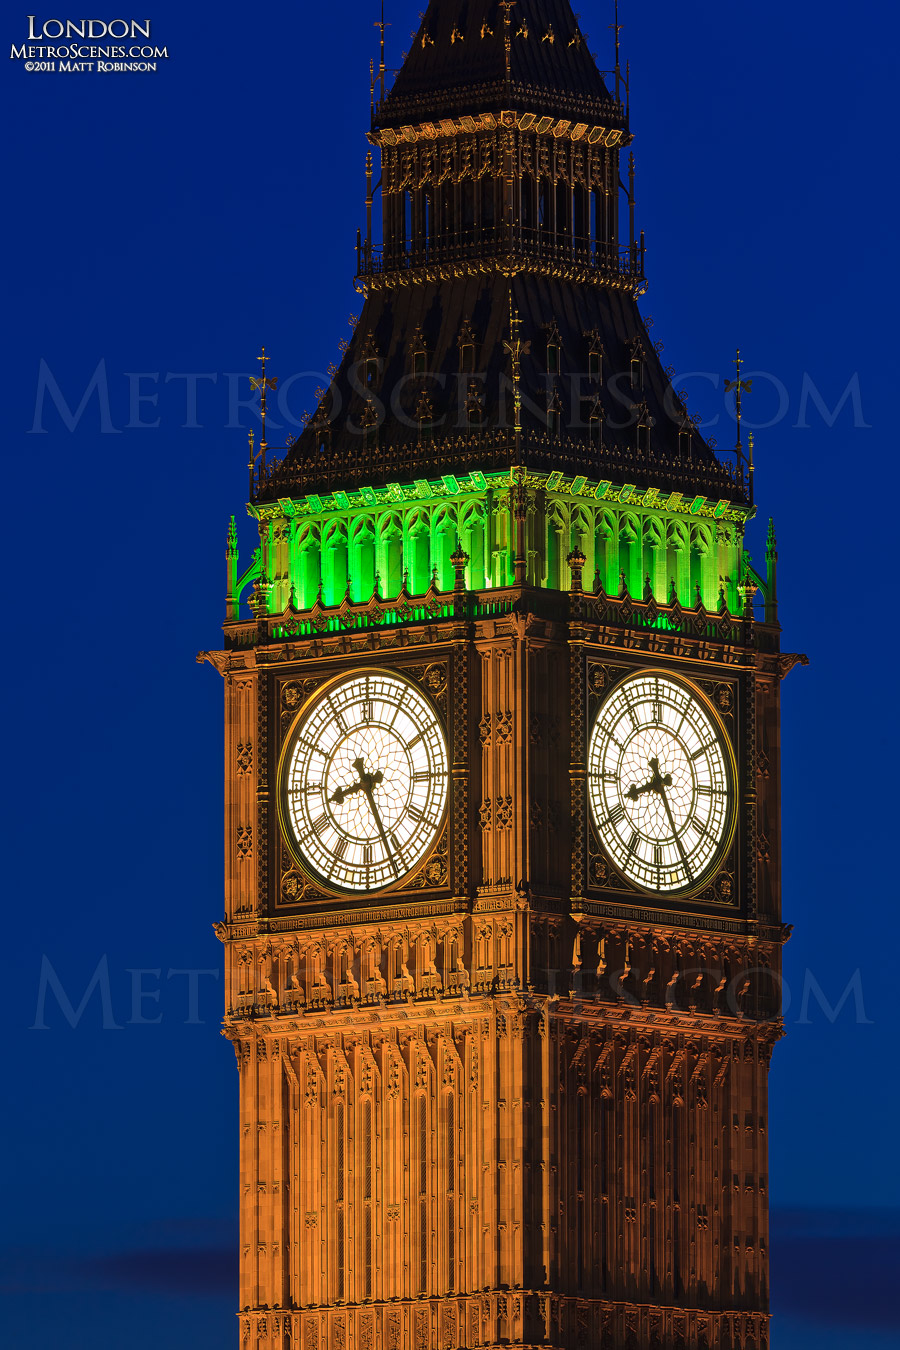 Detail of the Clock-face of Big Ben